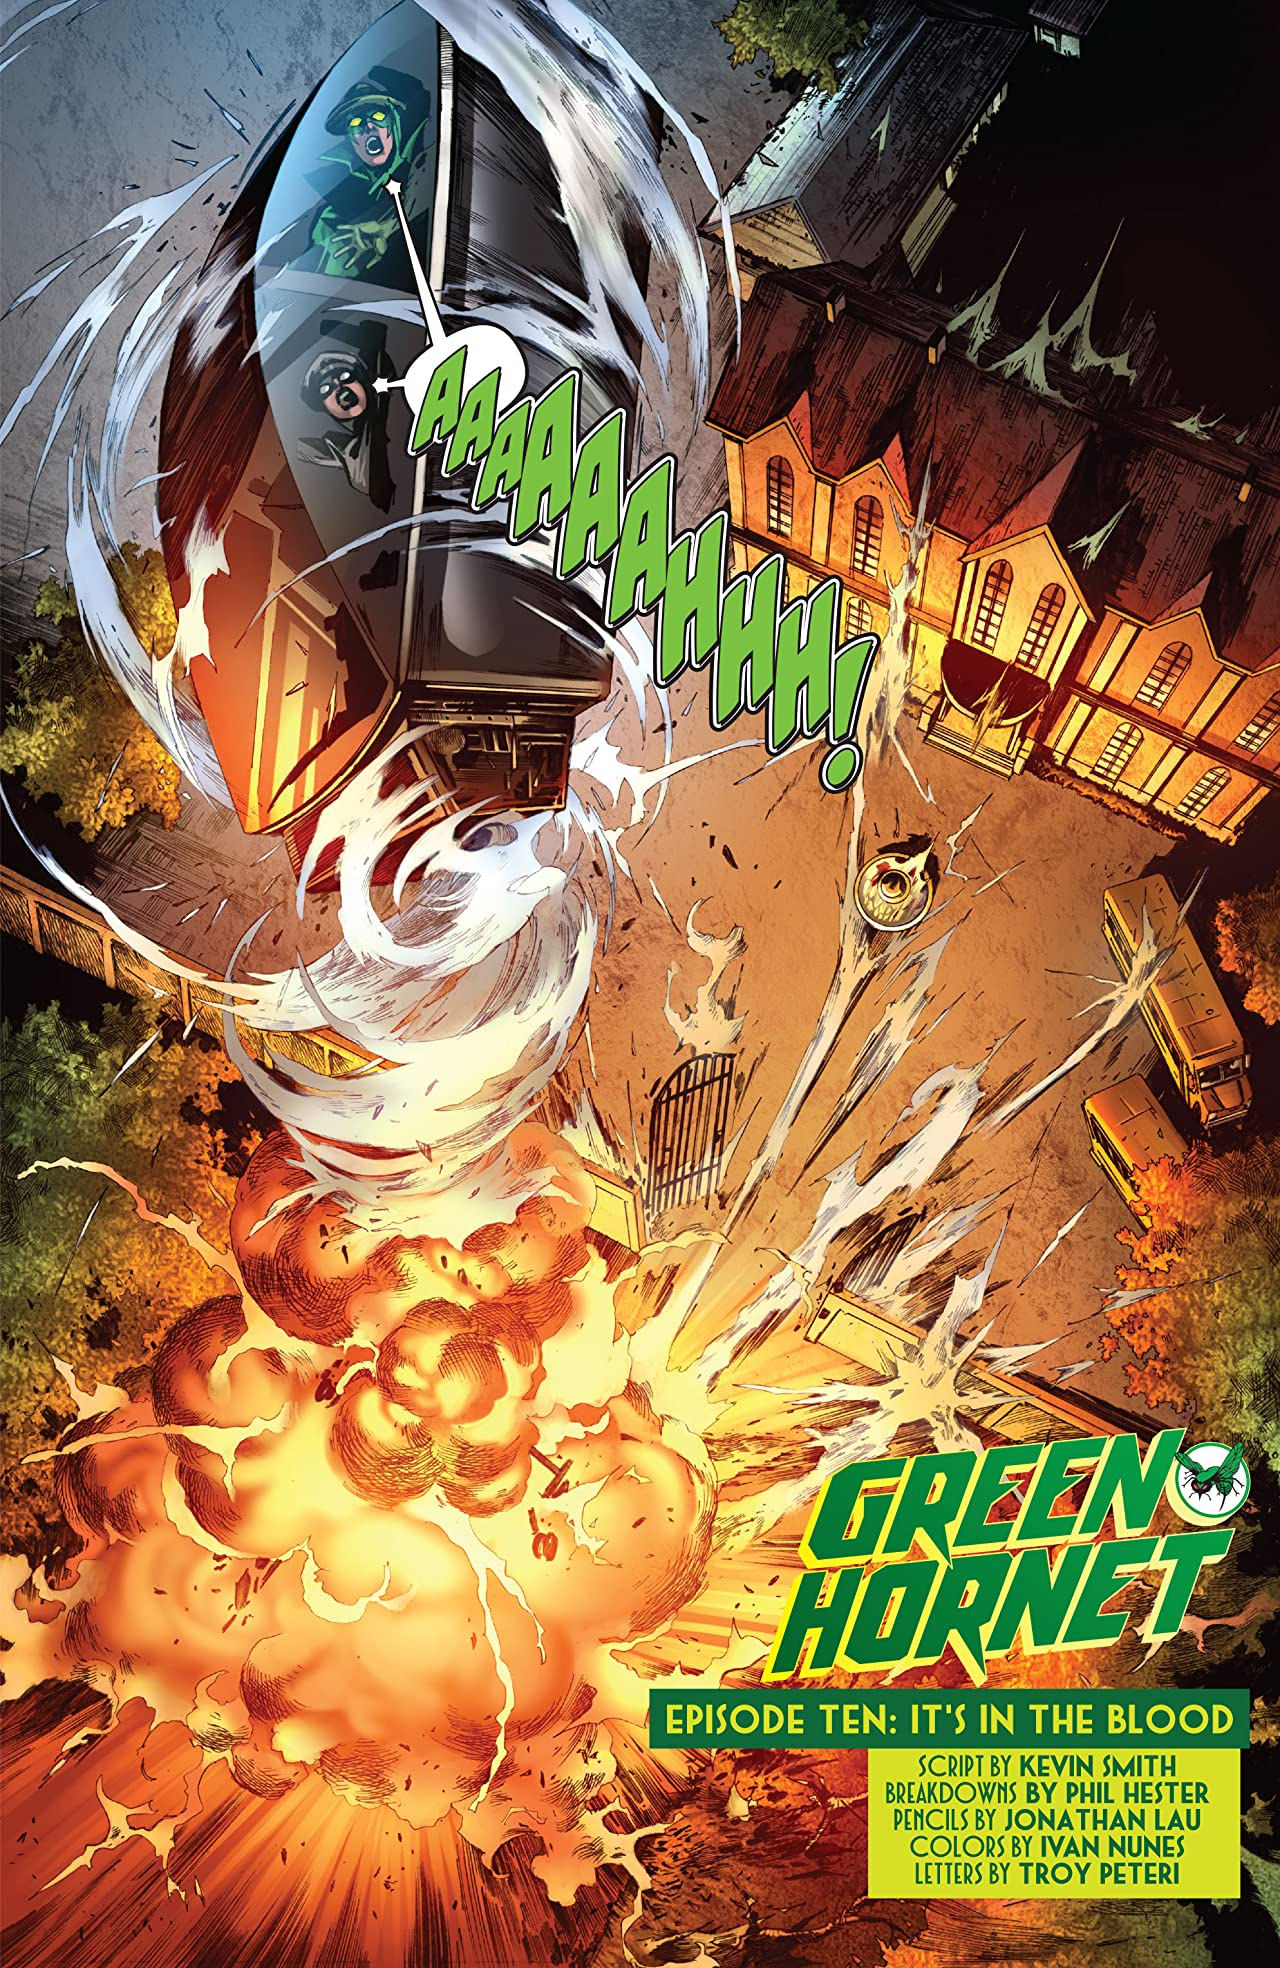 Kevin Smith's Green Hornet #10